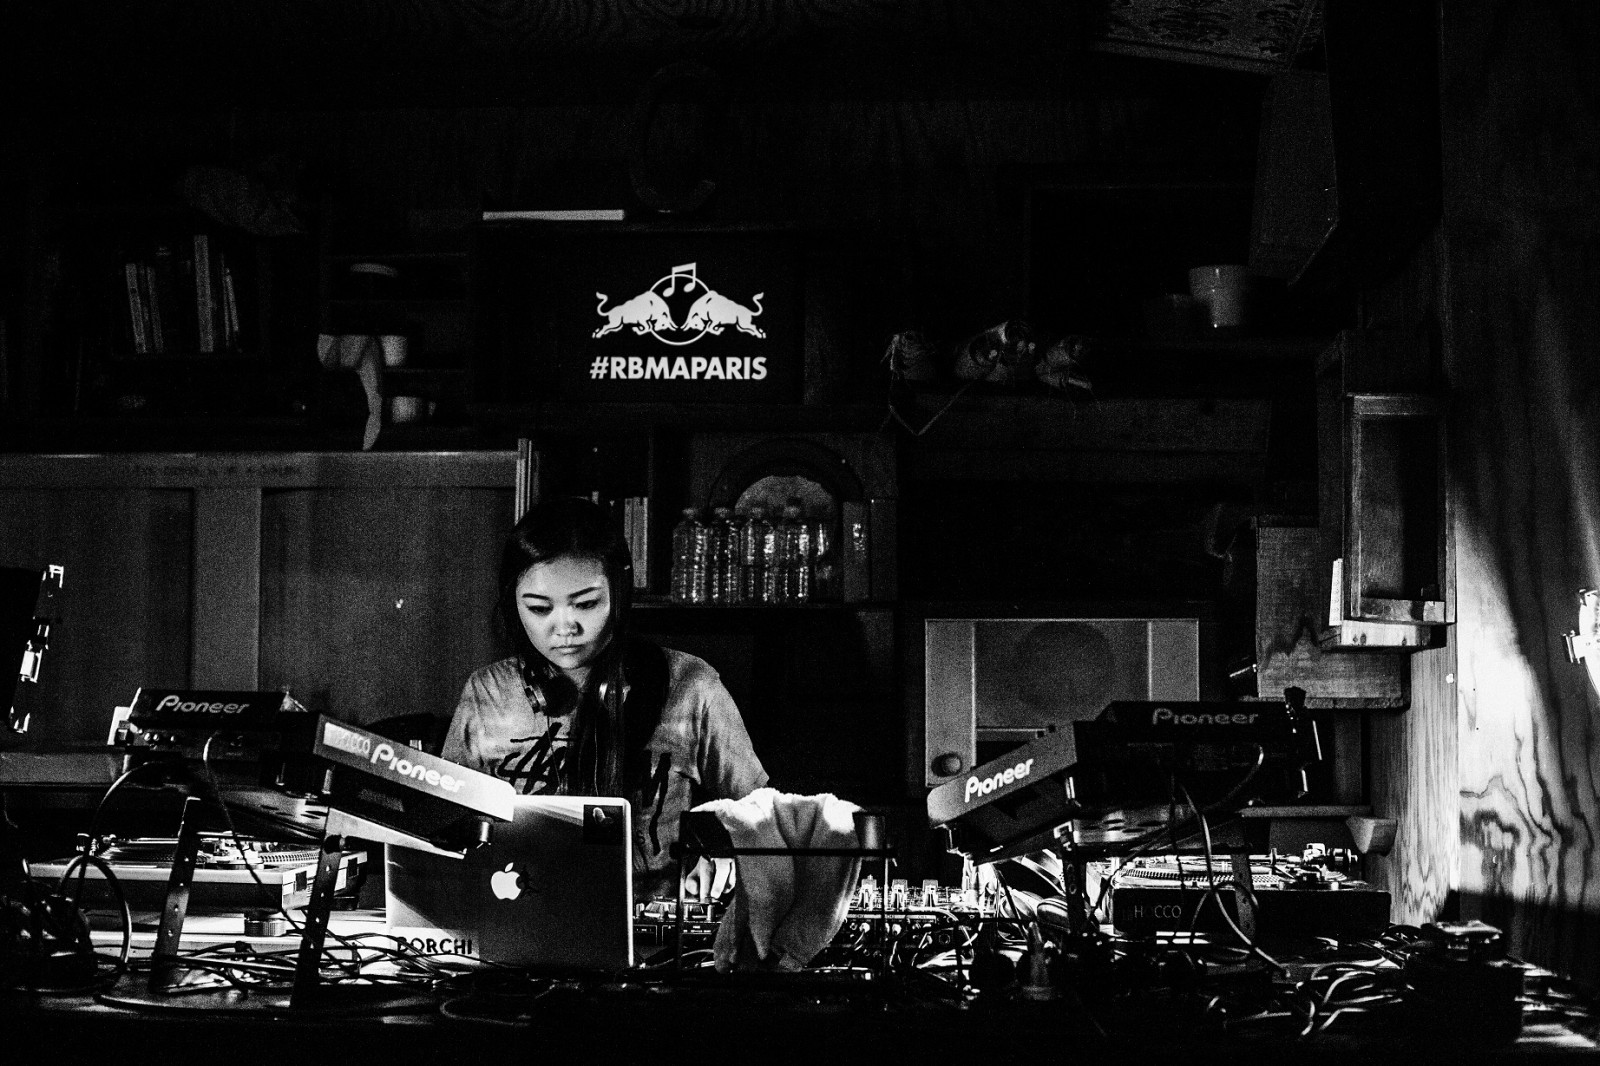 Miso at Revolution 808 during the Red Bull Music Academy in Paris, October 25 to November 27, 2015